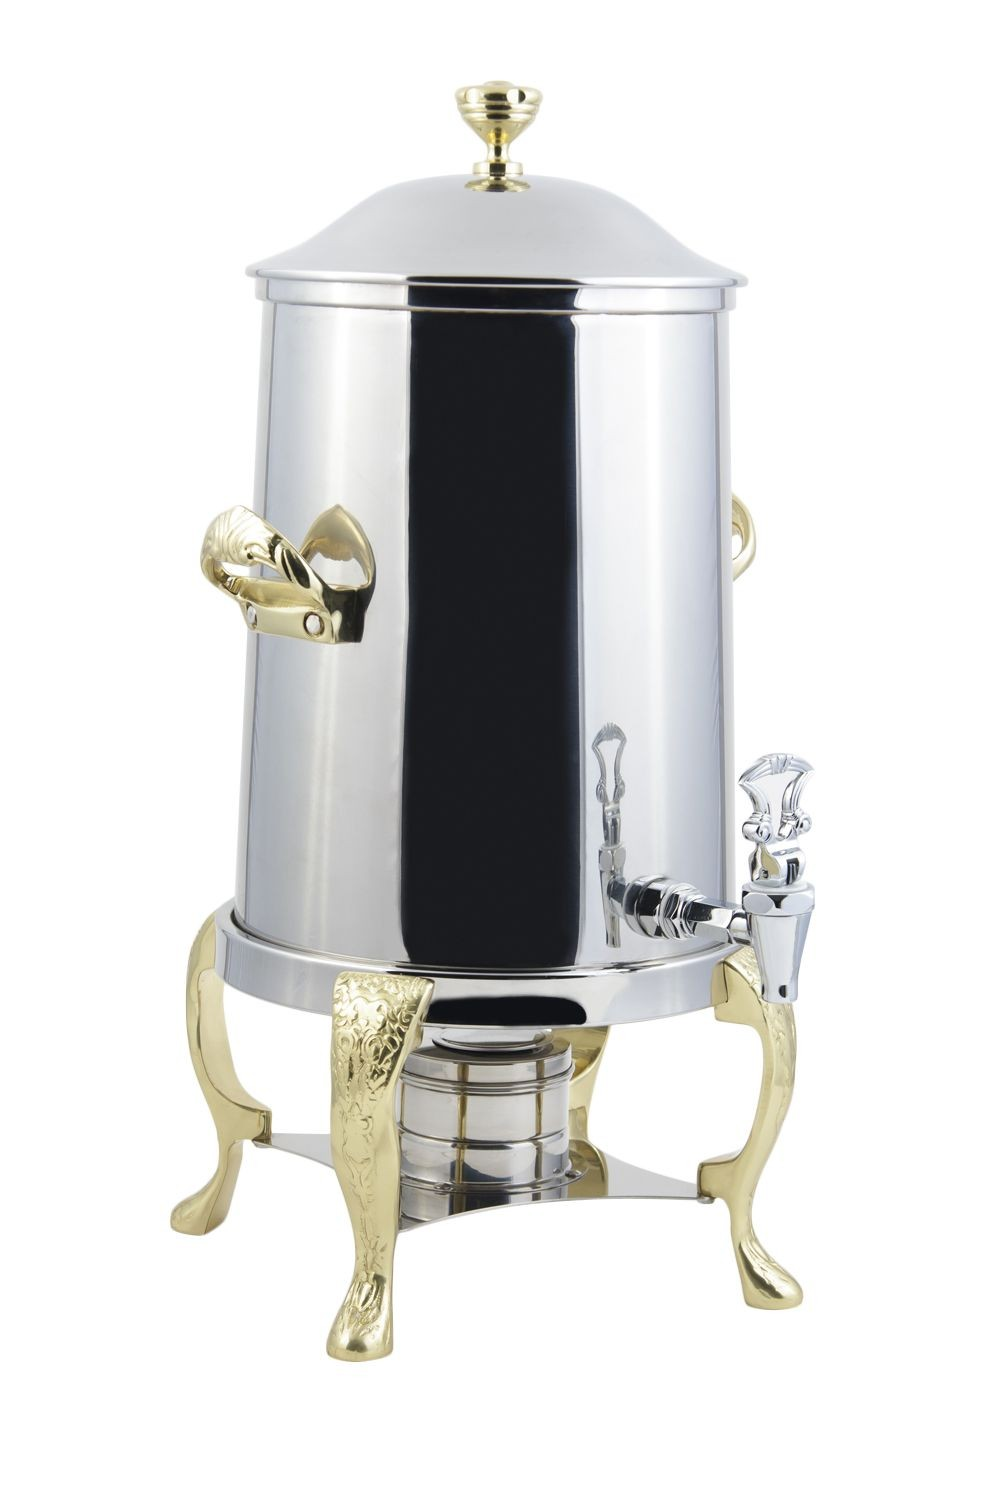 Bon Chef 47105 Renaissance Non-Insulated Coffee Urn, 5 1/2 Gallon